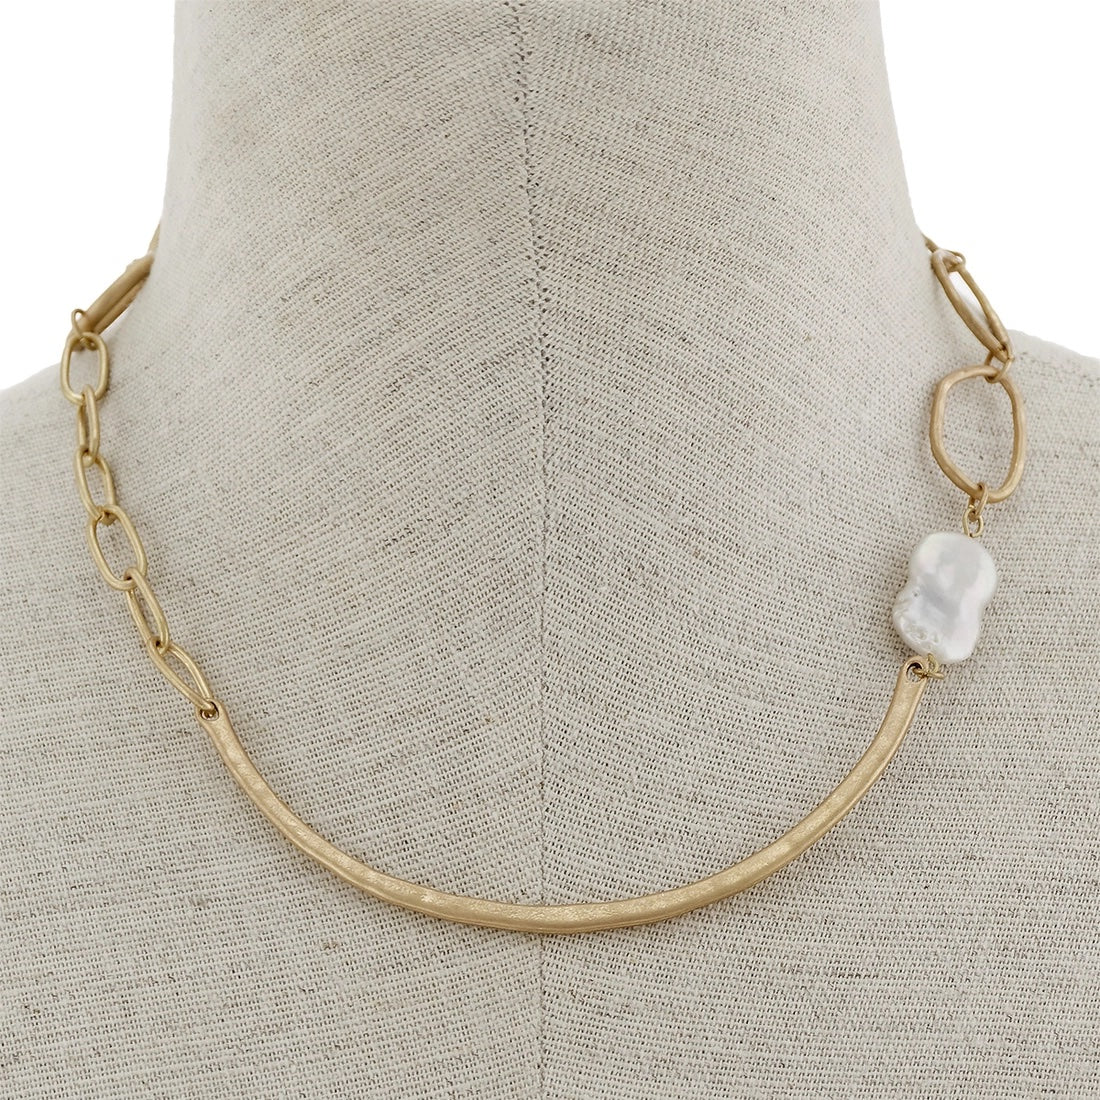 Hammered worn gold neck with baroque pearl & toggle - LURE Boutique